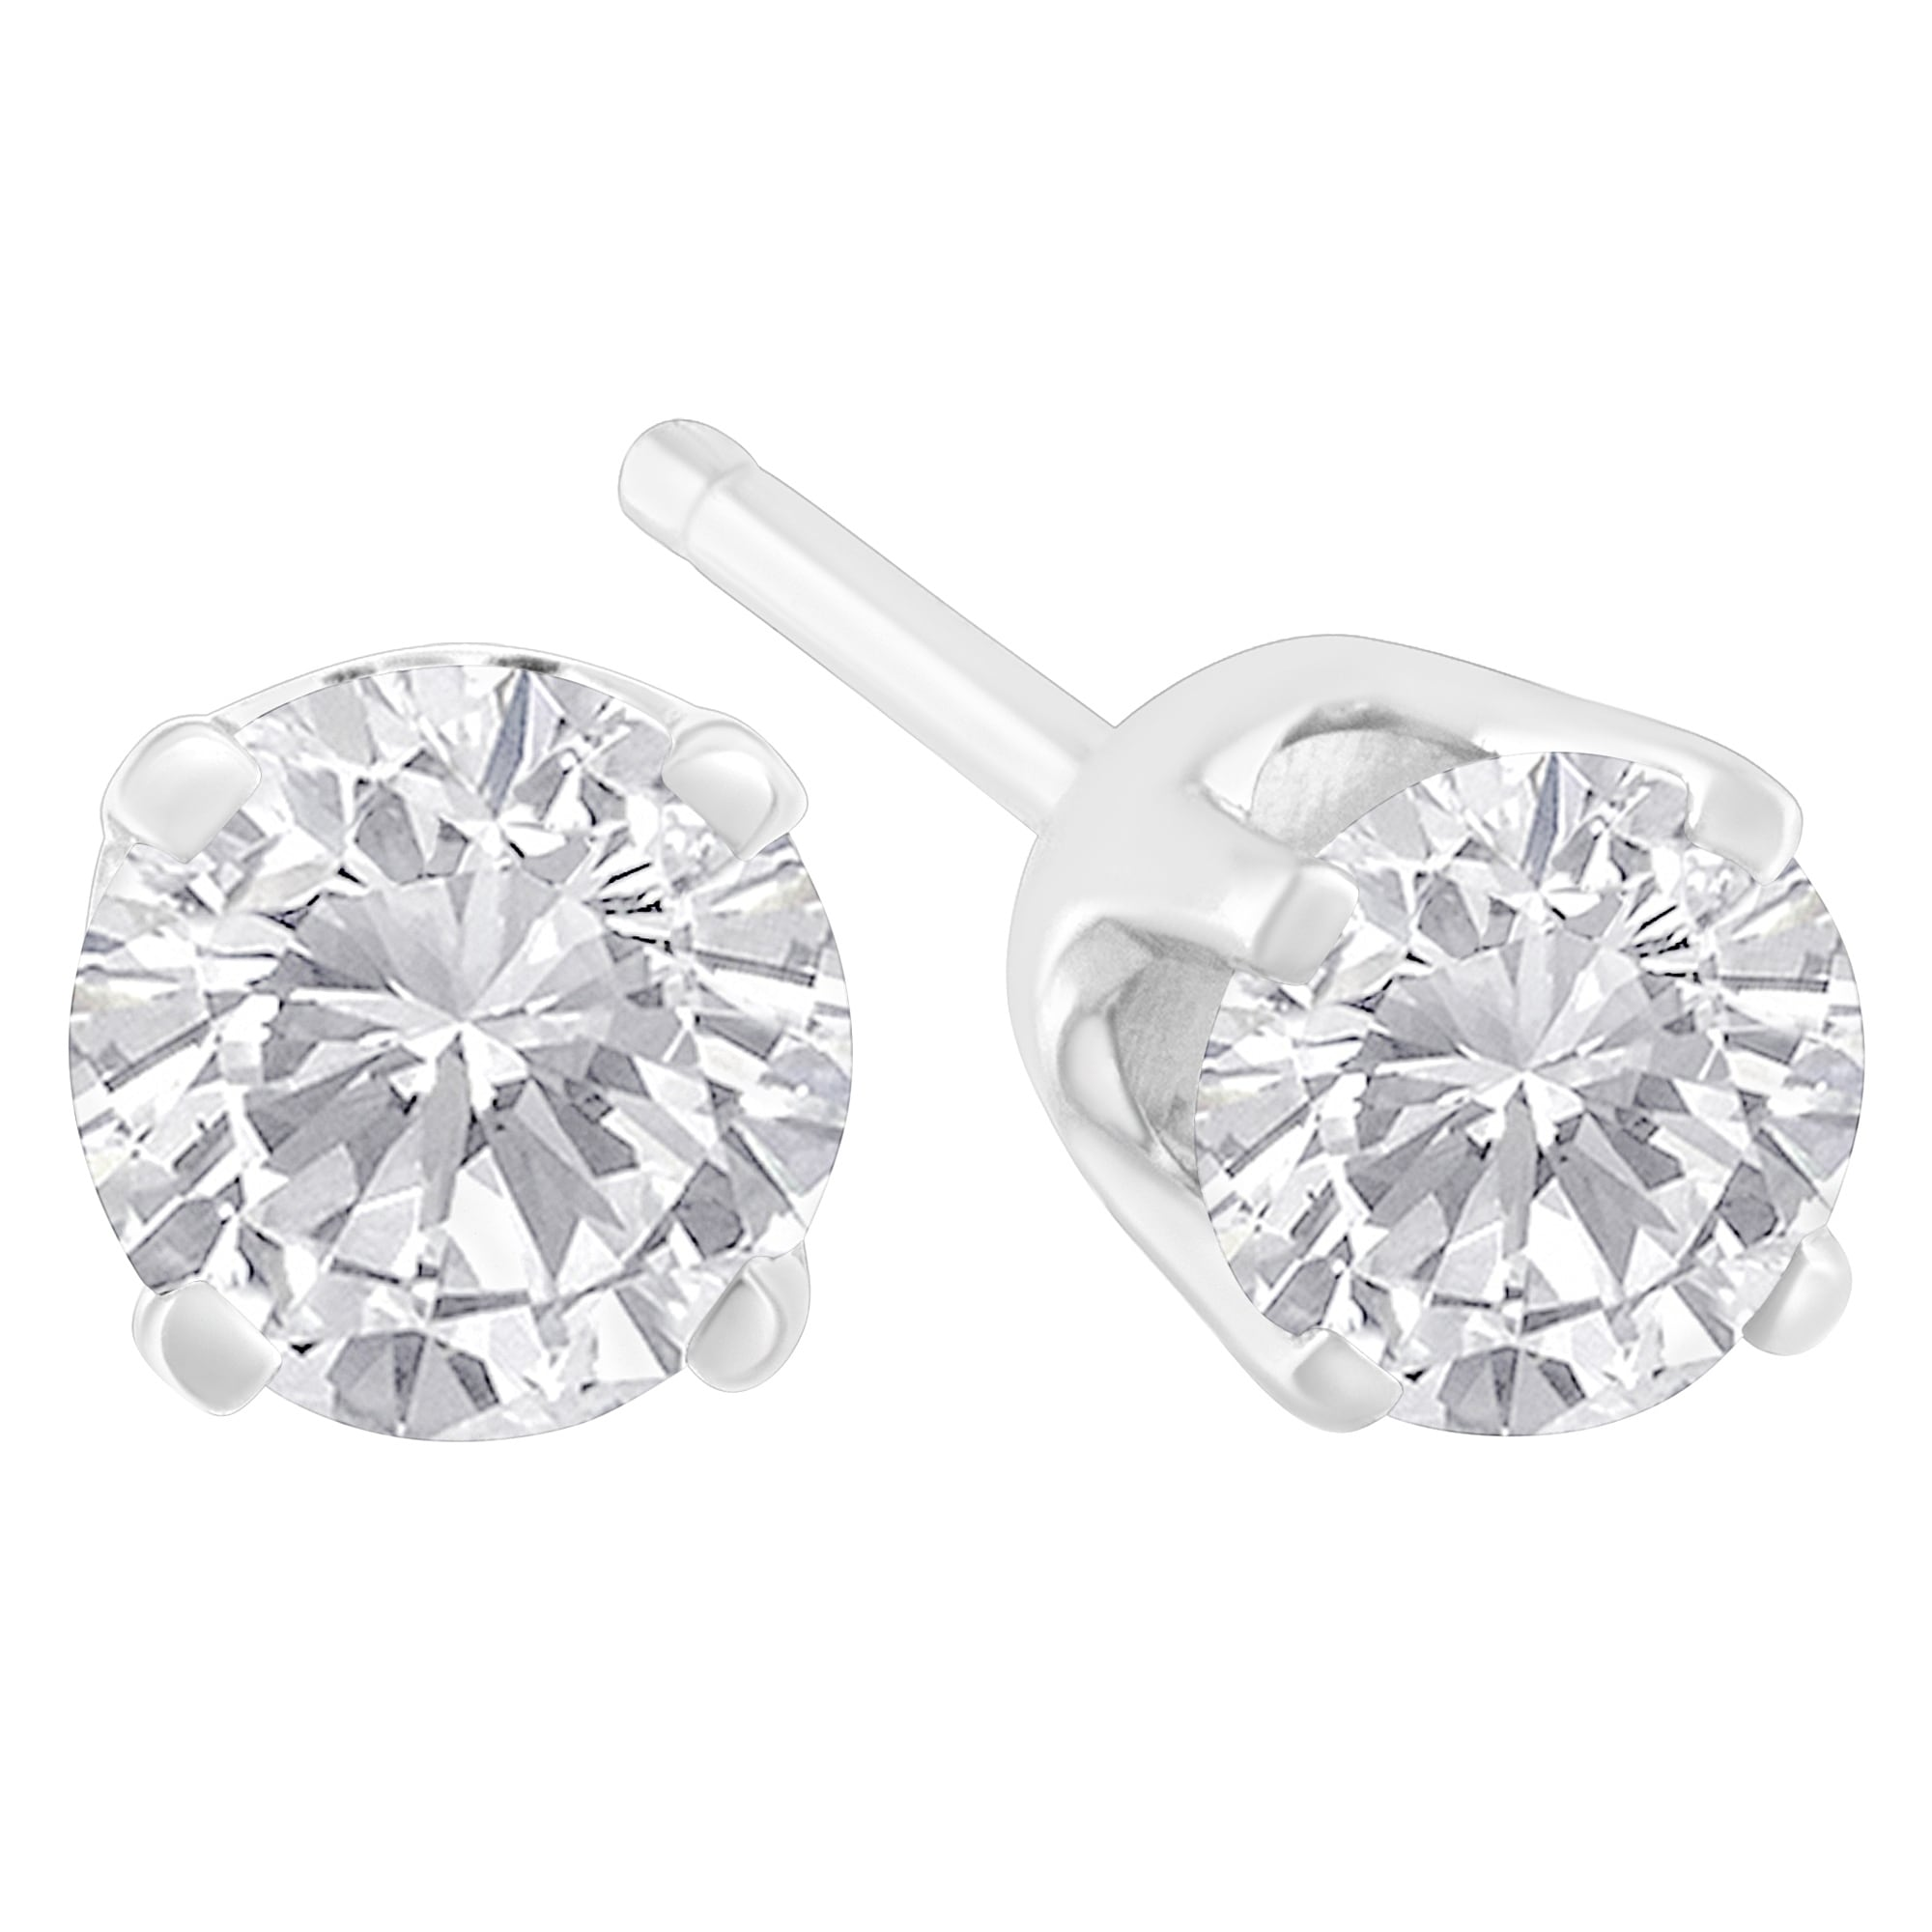 w solitaire white gold pin brilliant carat earrings lab created t forever moissanite